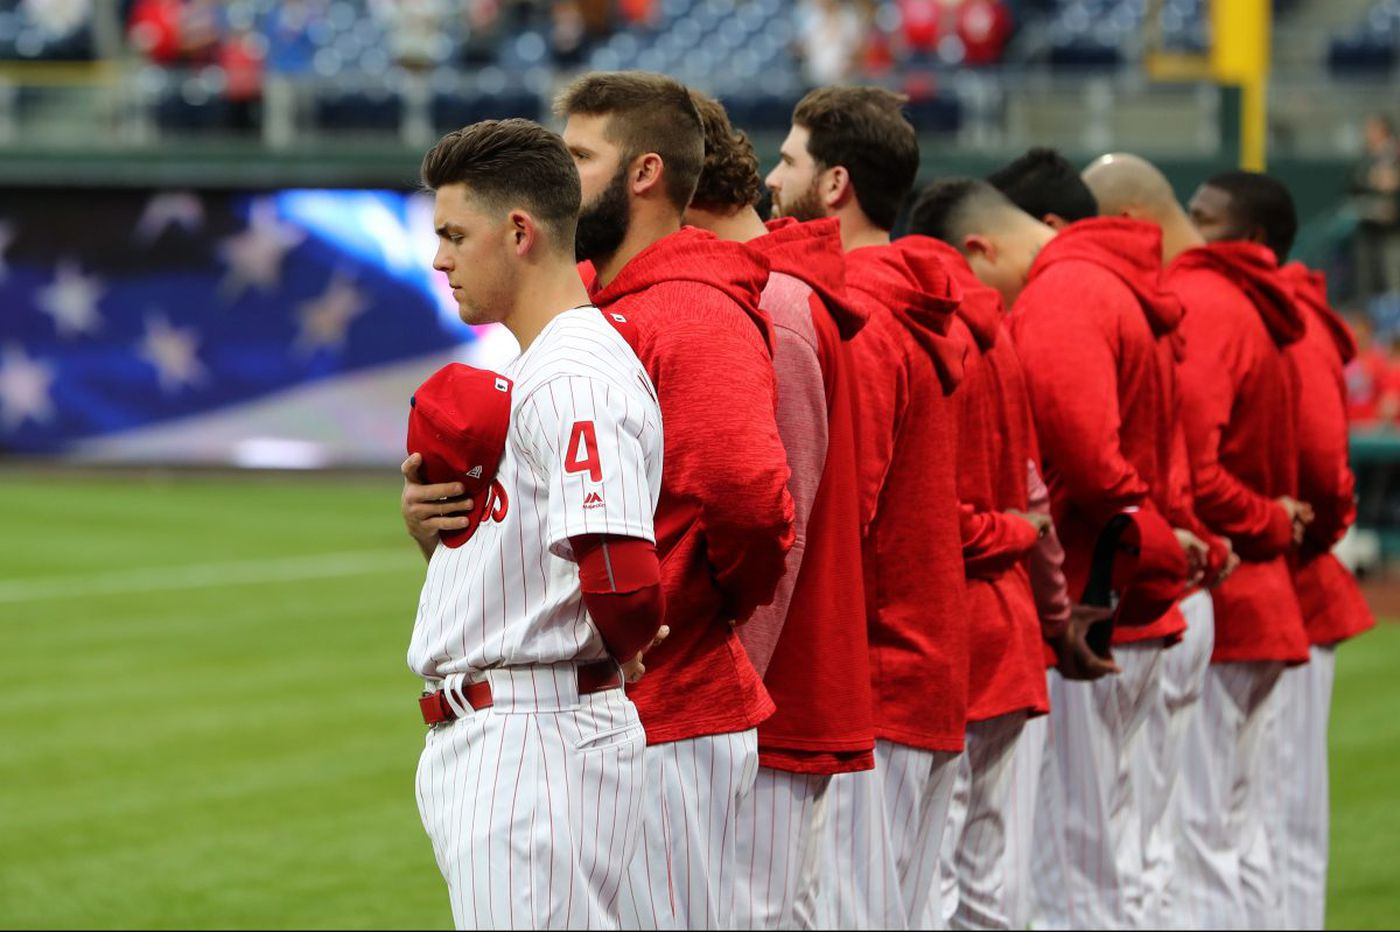 Phillies answer back with feel-good win   Extra Innings